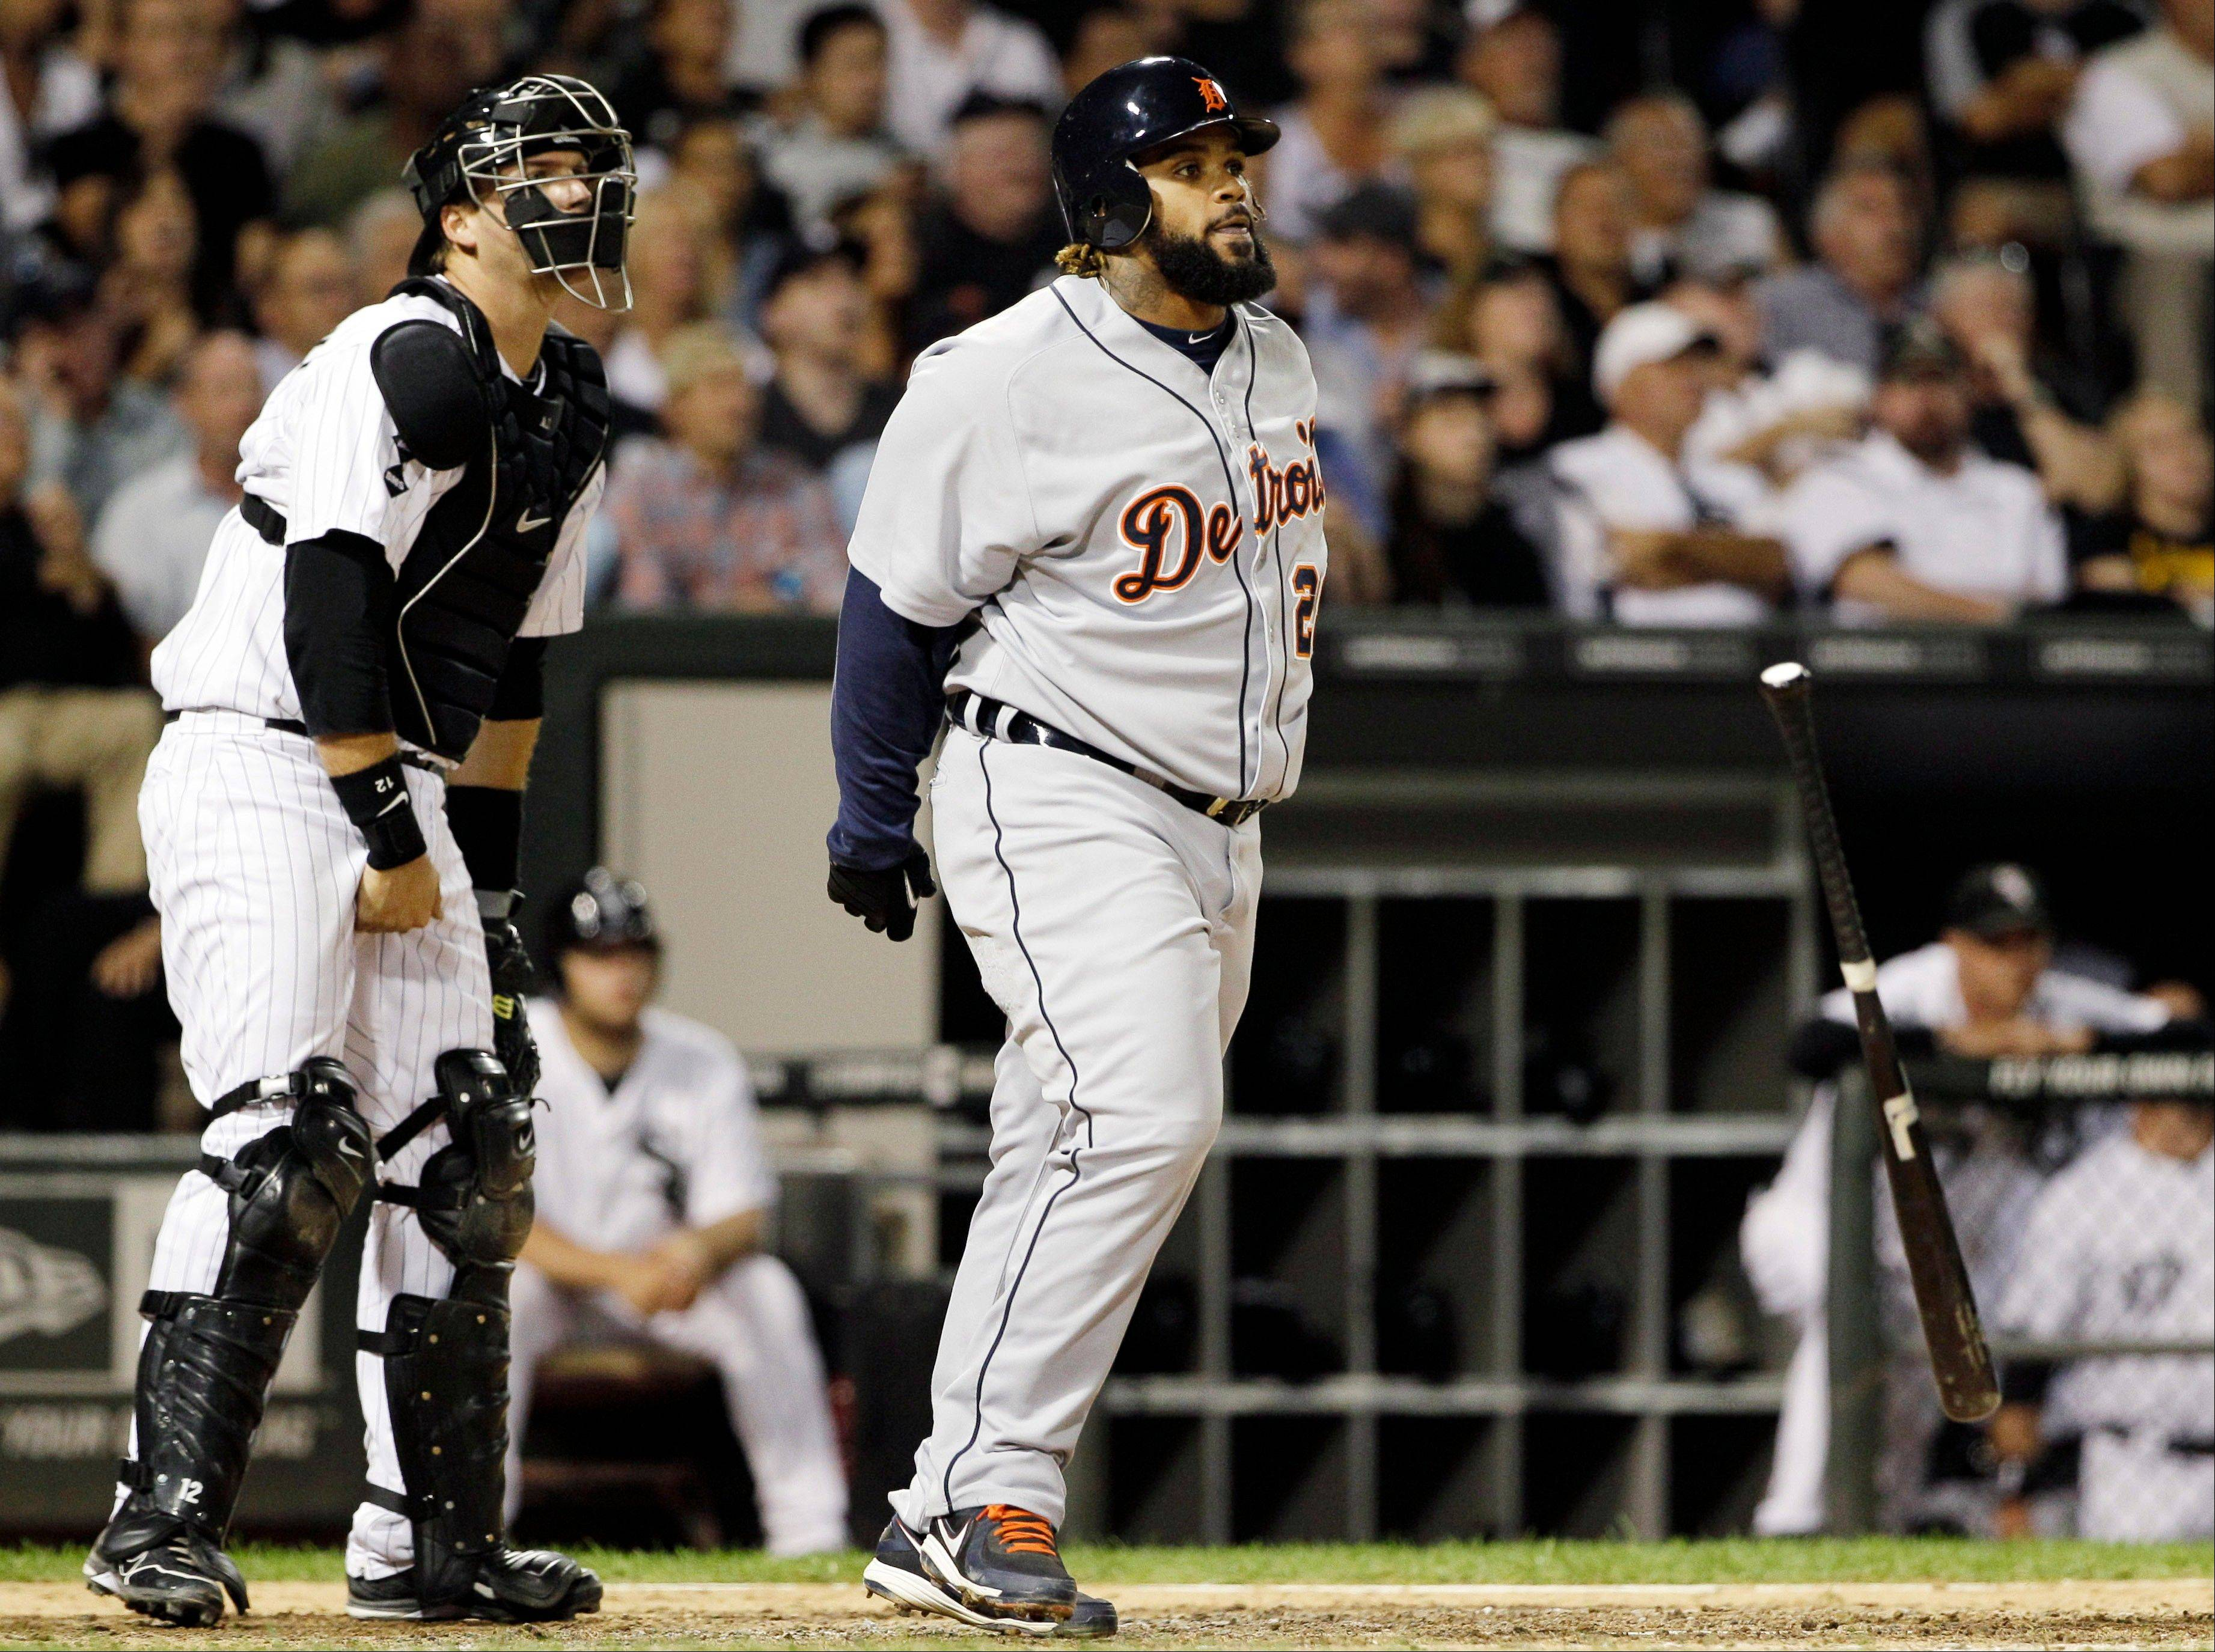 Detroit Tigers first baseman Prince Fielder, right, watches his three-run home run as Chicago White Sox catcher A.J. Pierzynski looks on Wednesday during the seventh inning at U.S. Cellular Field.